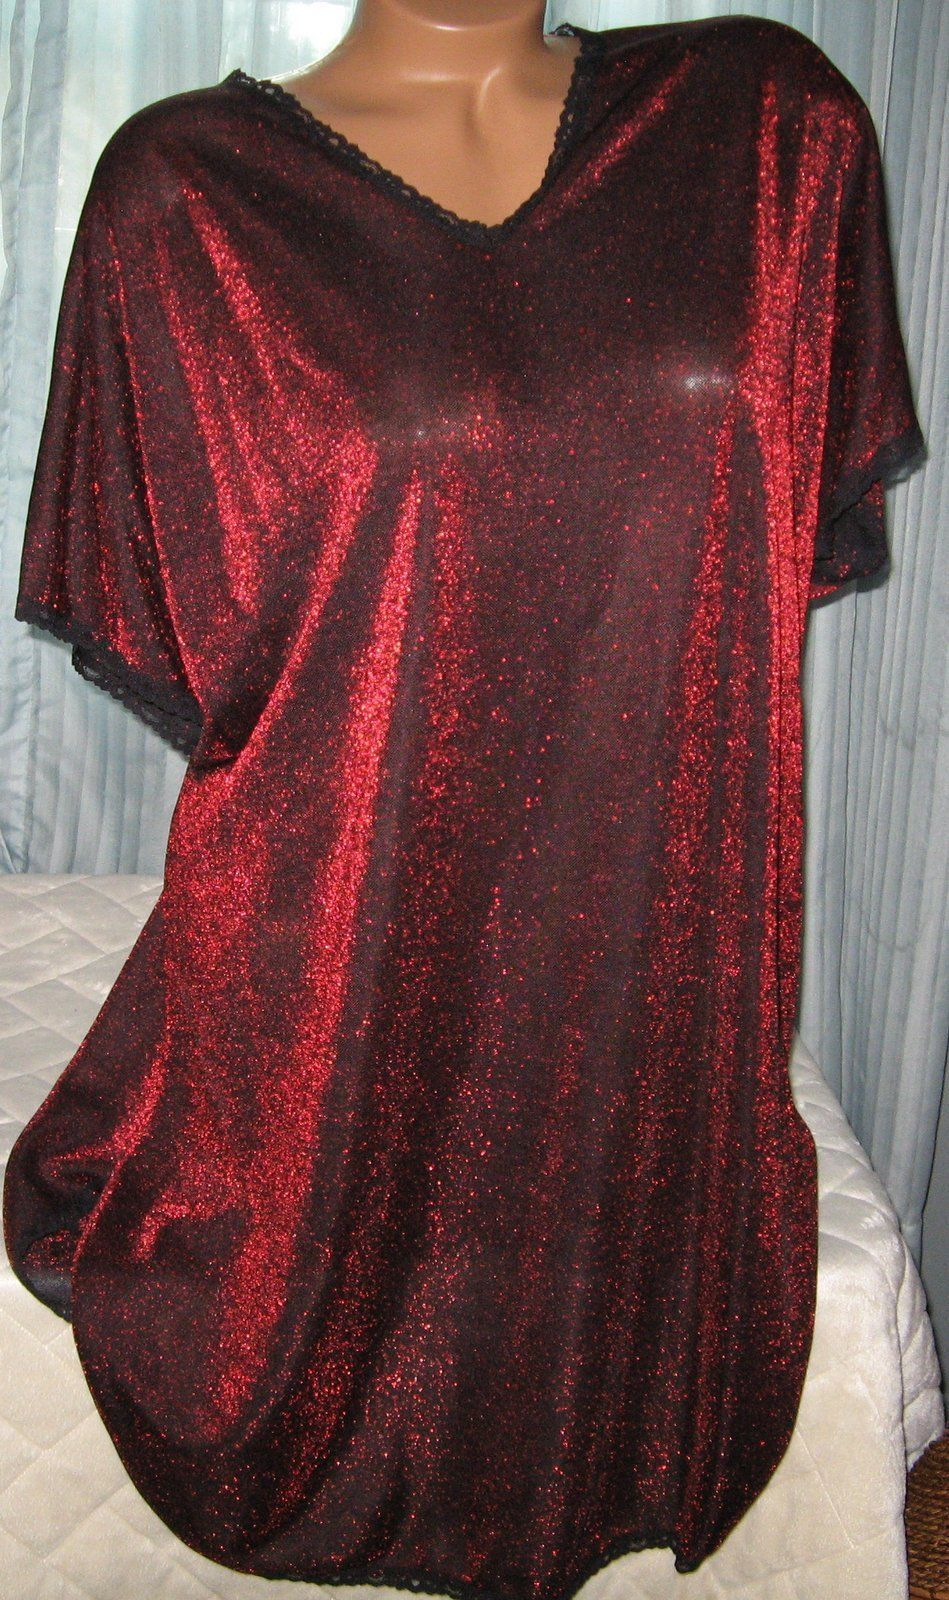 Red Black Metallic Semi Sheer Oversized Sleepshirt Short Gown S M